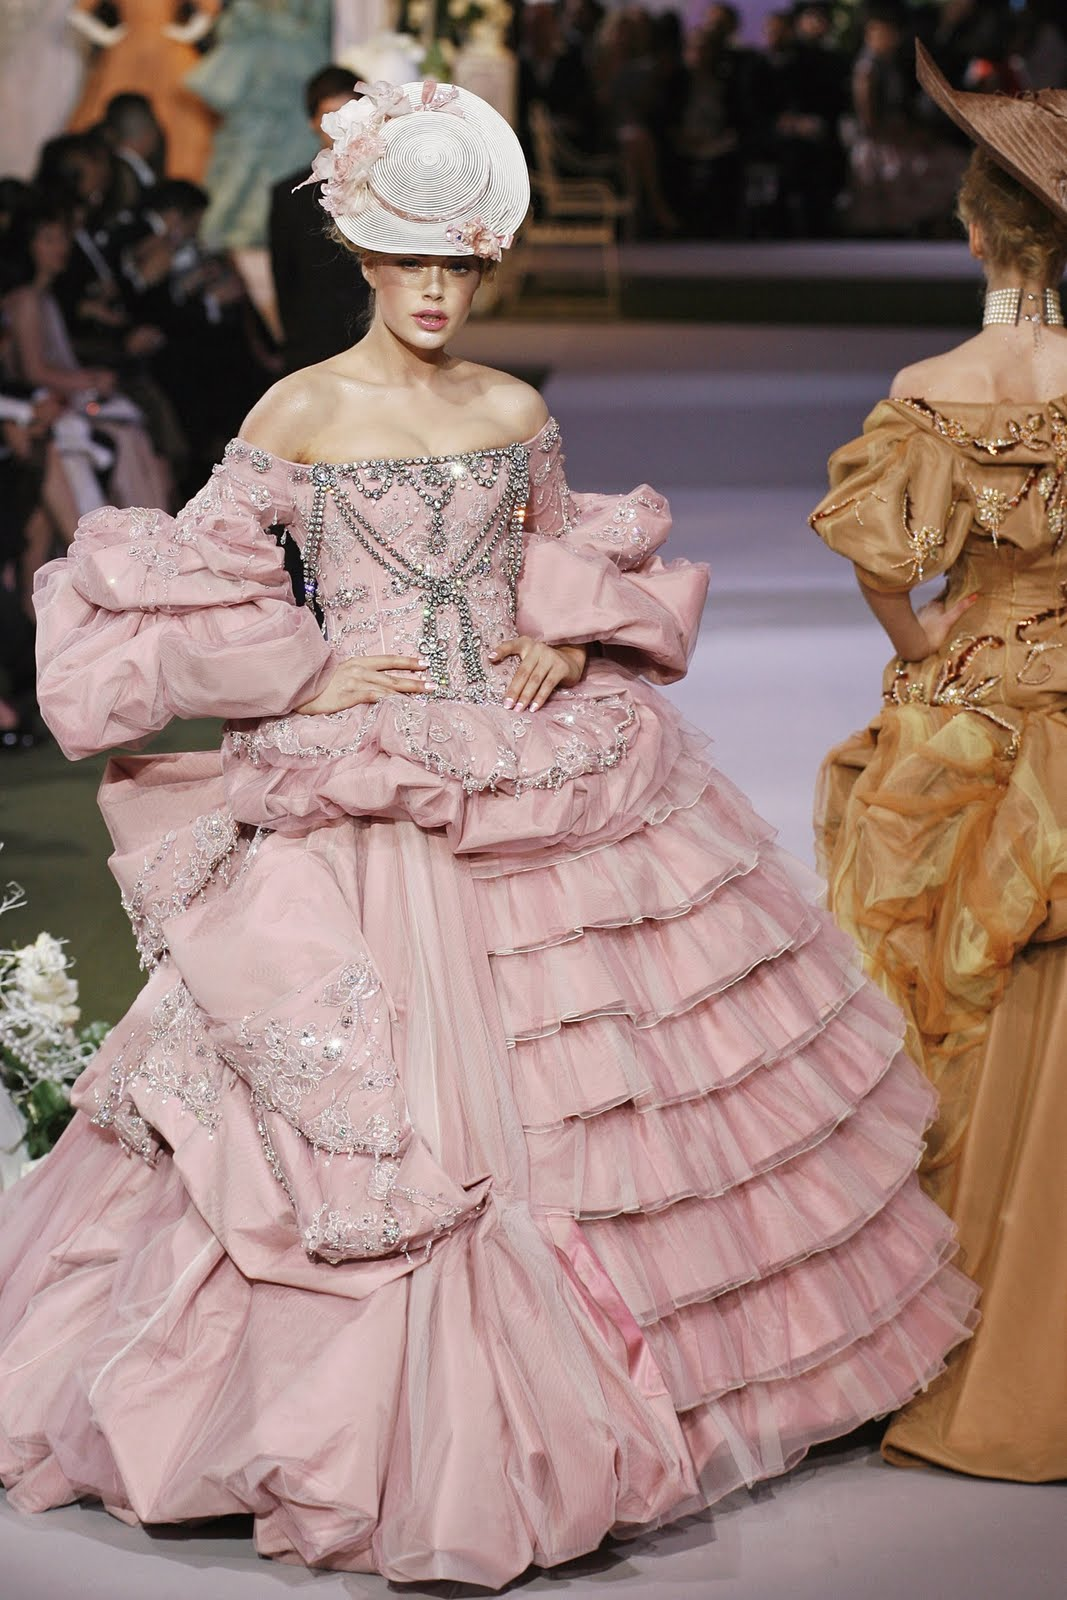 Marie Antoinette Meets Vivienne Westwood The 18th Century Back In Fashion At Versailles Huffpost